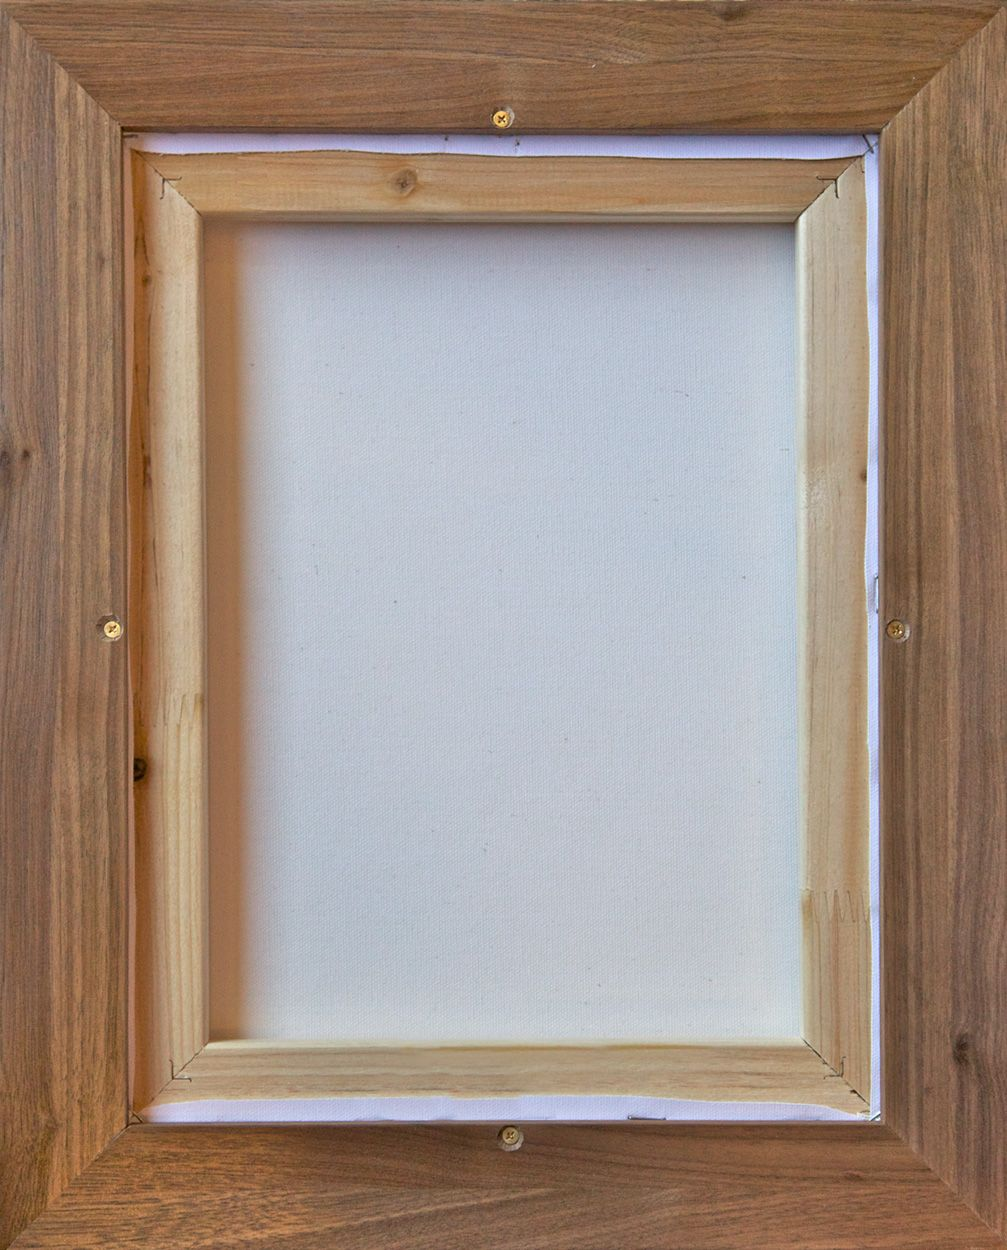 Building a floater frame for already stretched canvas. | Great Ideas ...